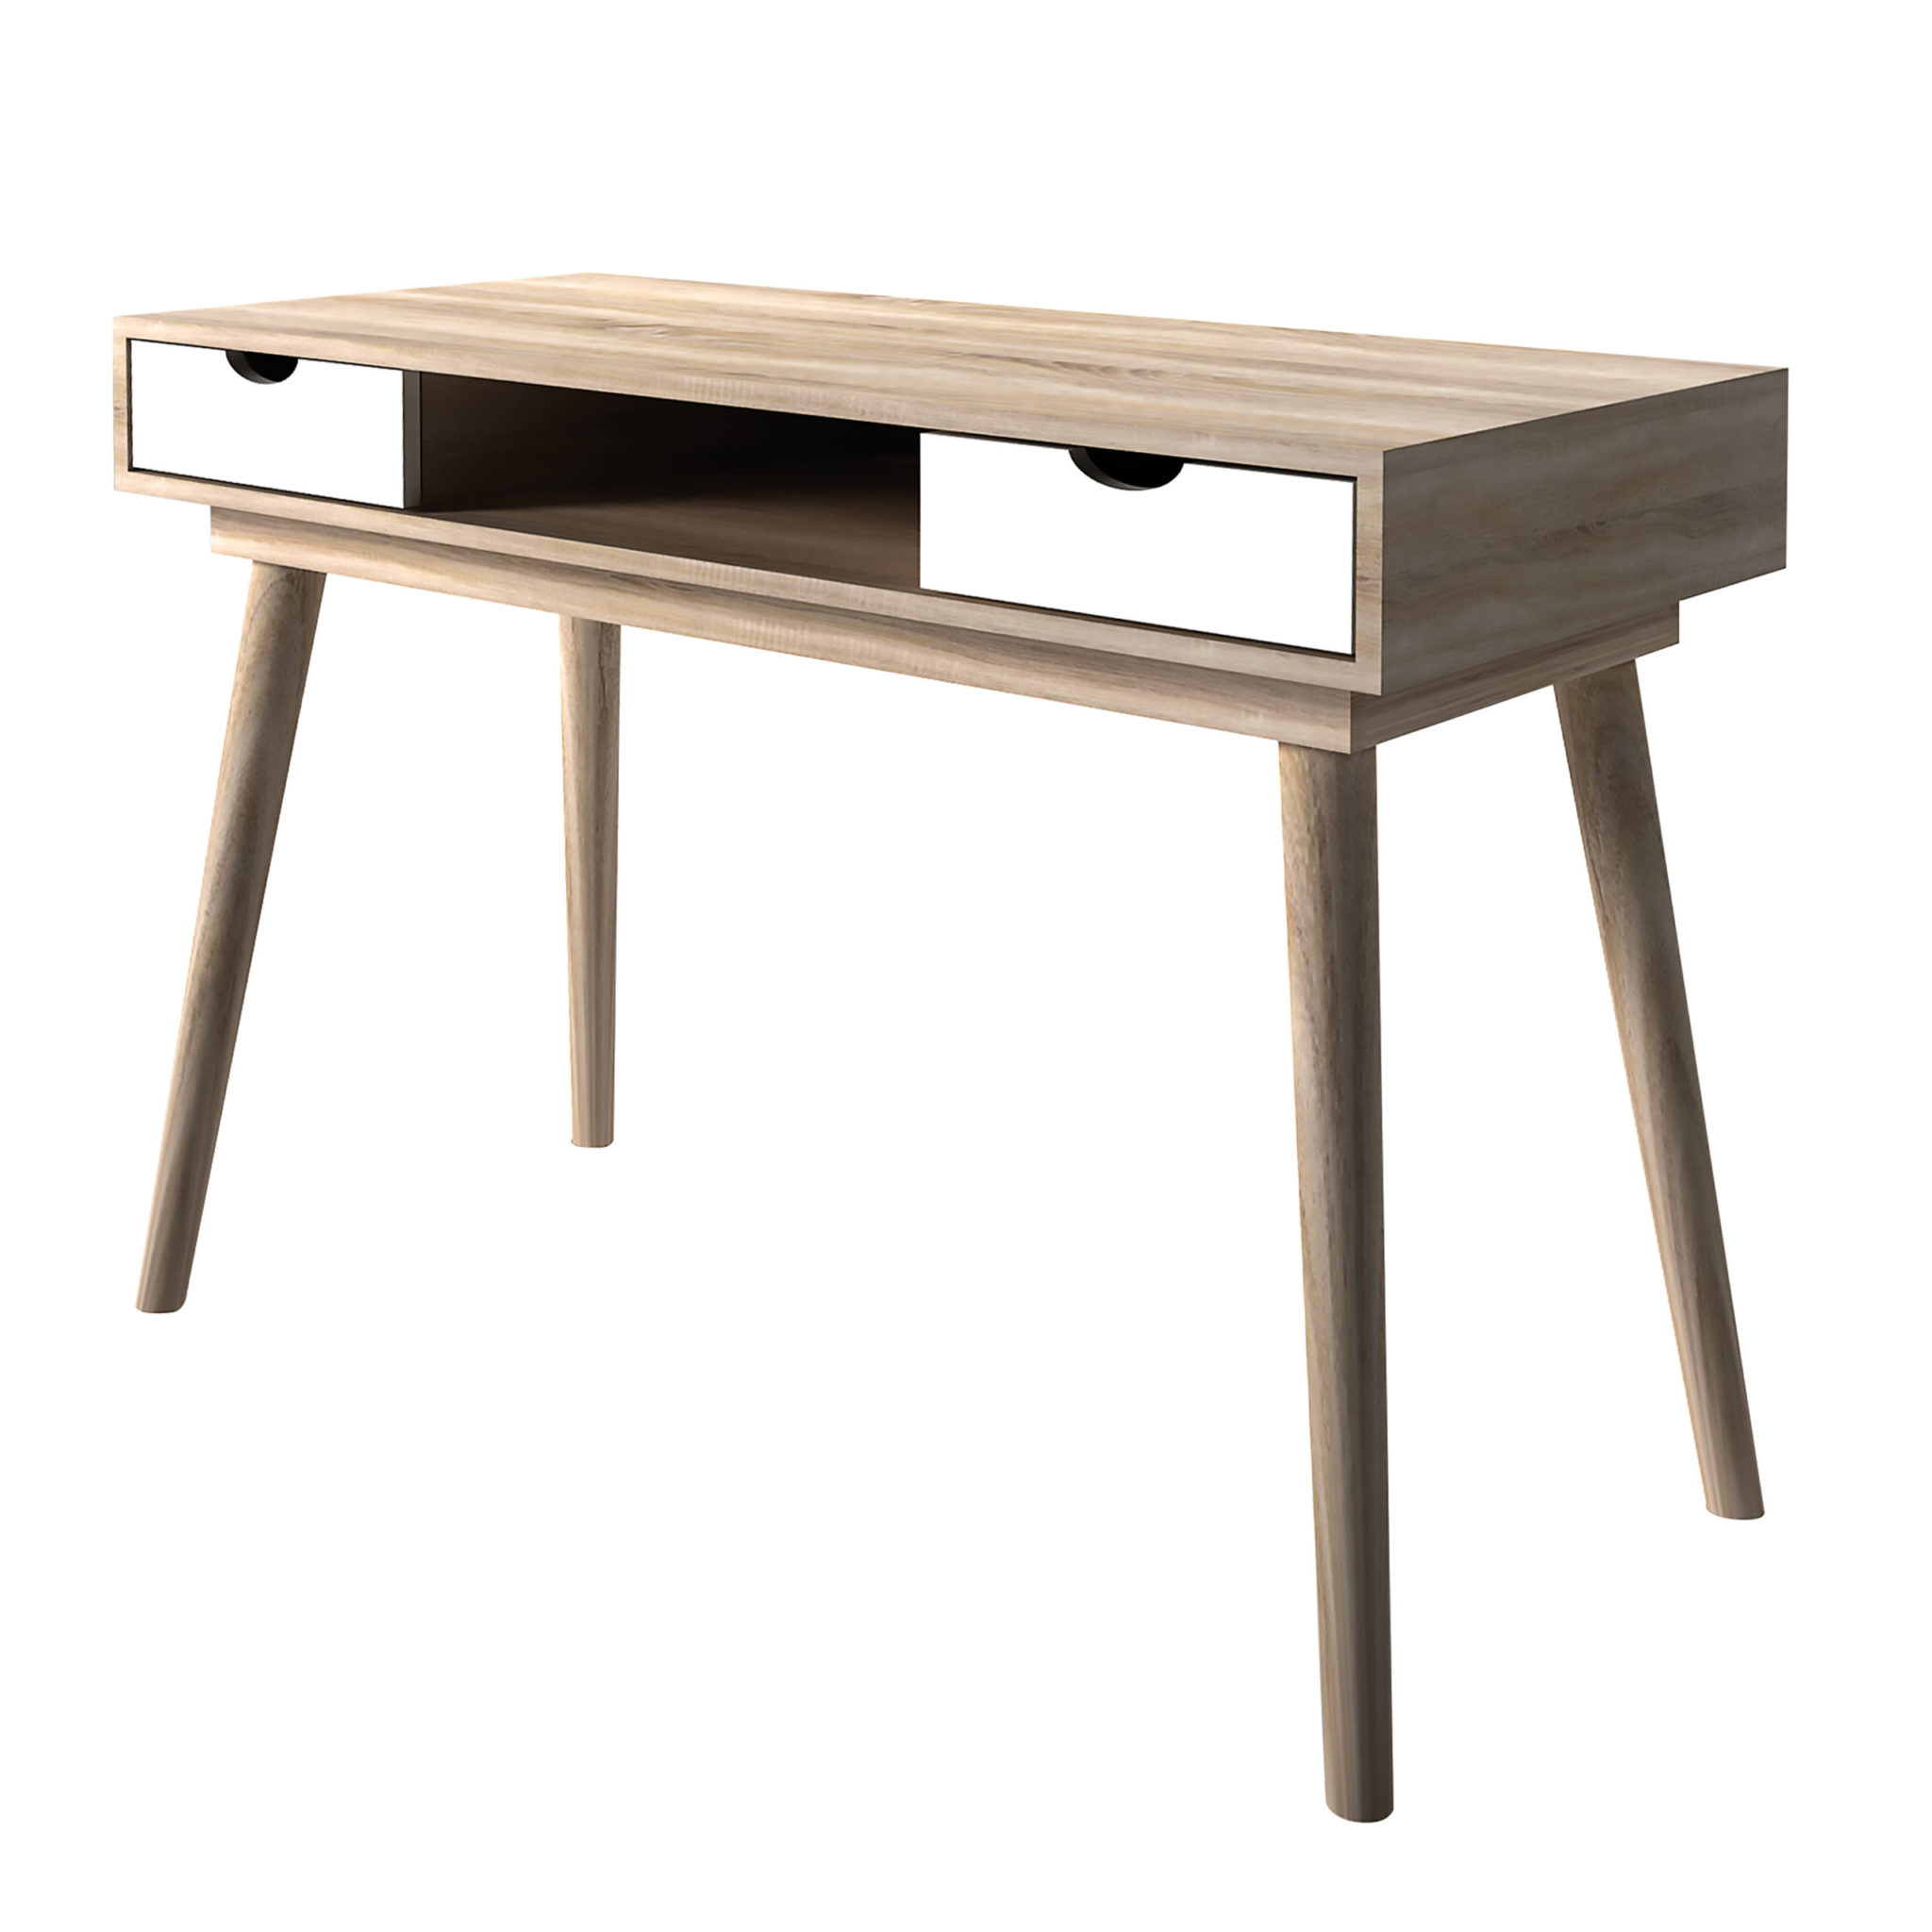 Secily Desk Oak With White Drawers